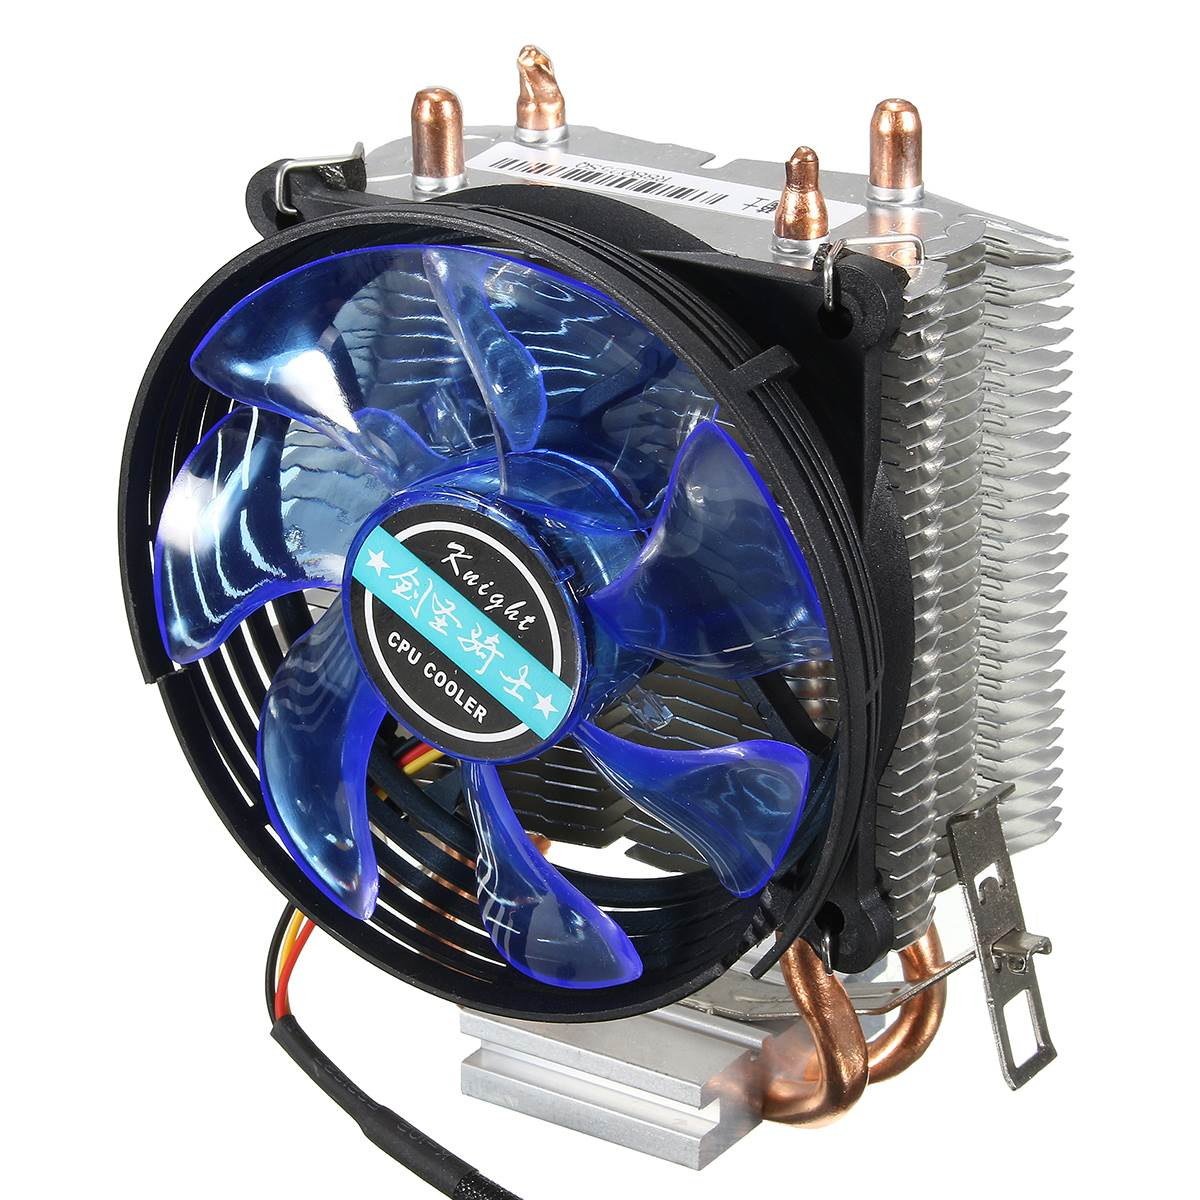 95x95x25mm LED Cooler Cpu Fan Heatsink Copper for Intel LGA775/1156/1155 for AMD AM2/AM2+/AM3 fast free ship for intel 1155 1156 1150 i3i5 cpu pure copper core radiator square cooling fin thickness 35mm cooler heatsink